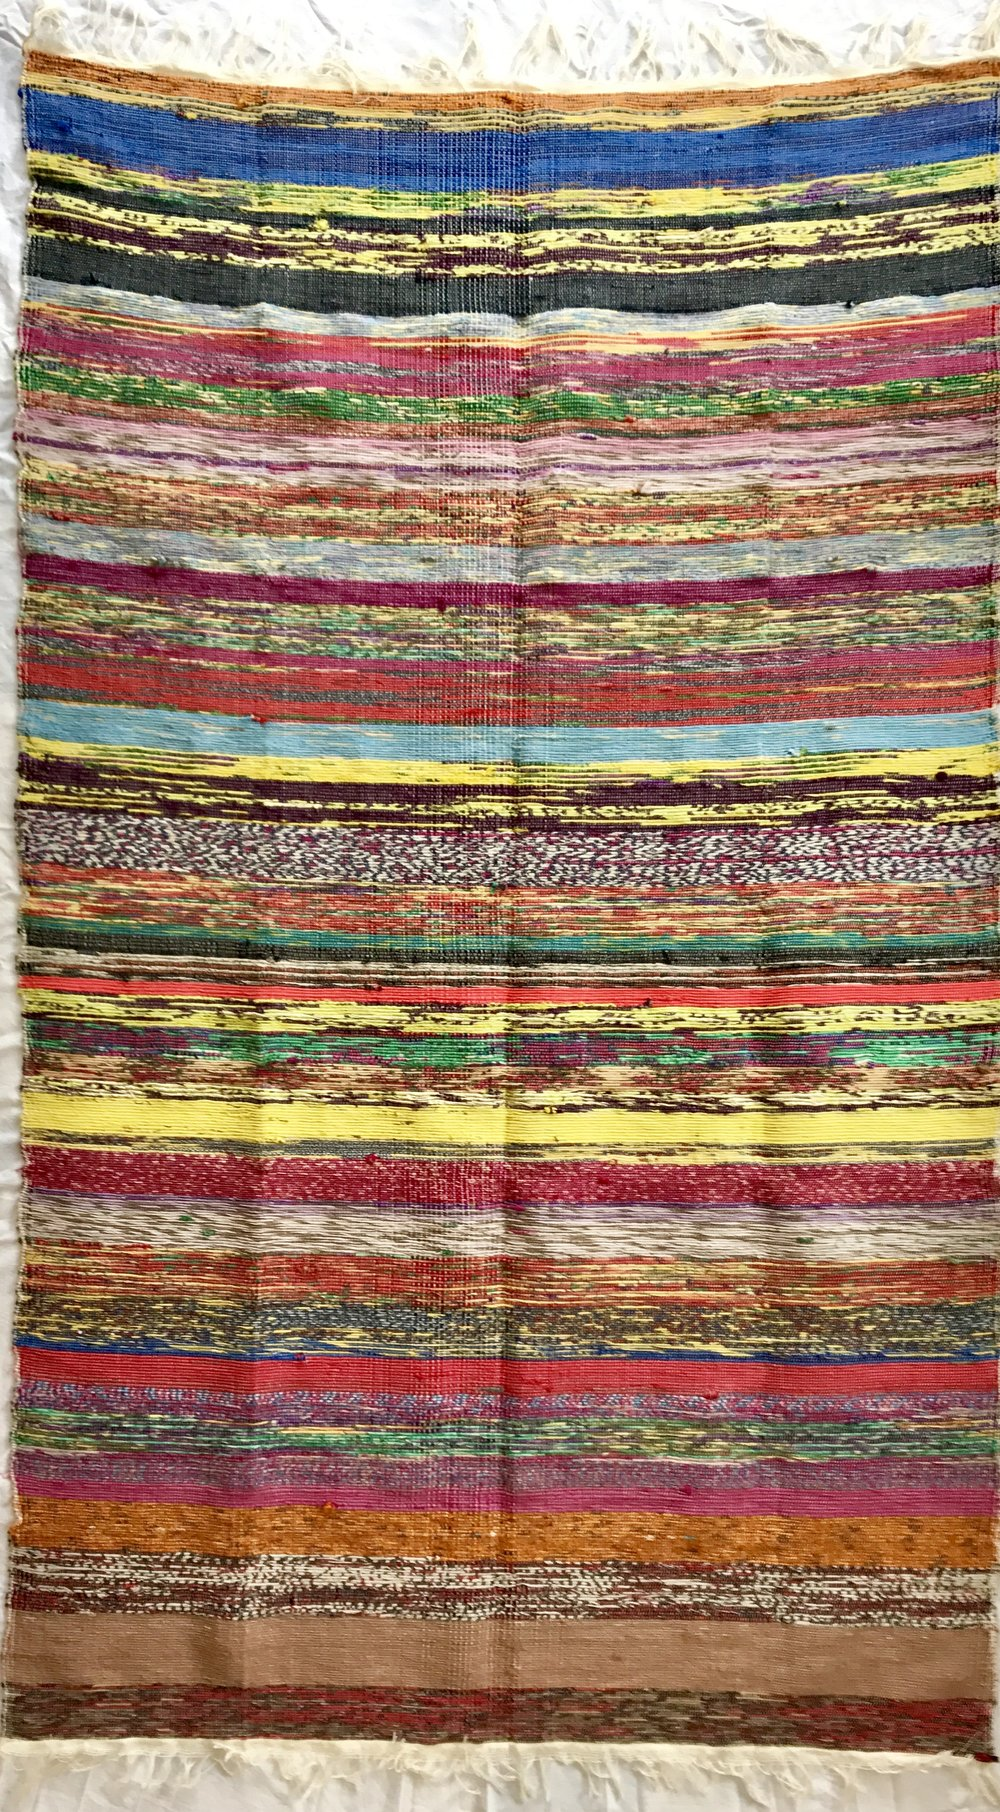 Indian Chindi handwoven rug (112 x 173 cm)